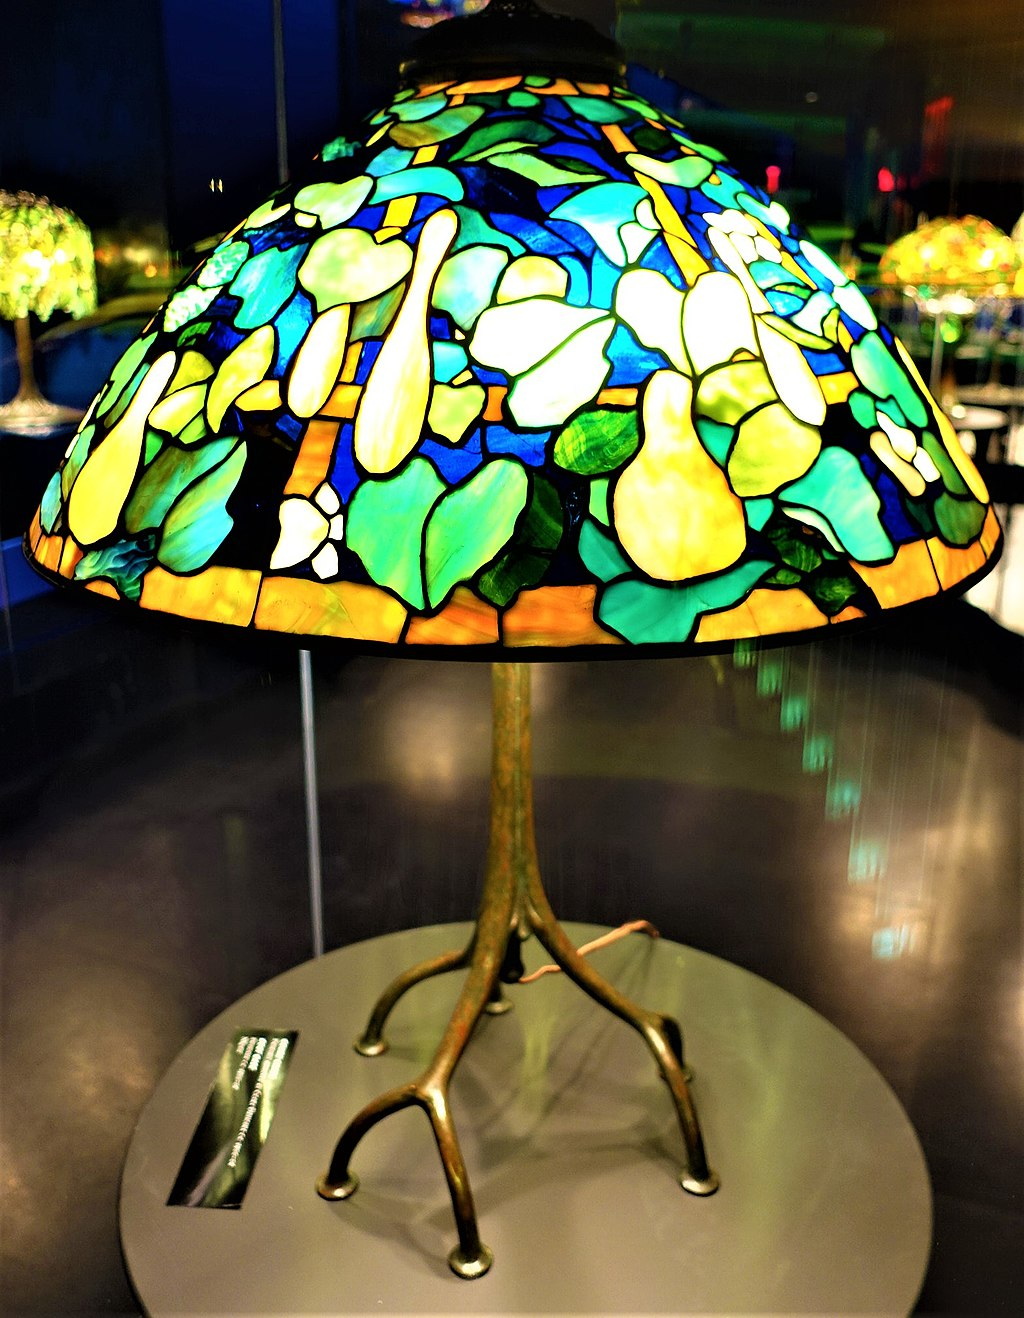 Gourd Shade - Tiffany Lamp - www.joyofmuseums.com - New-York Historical Society